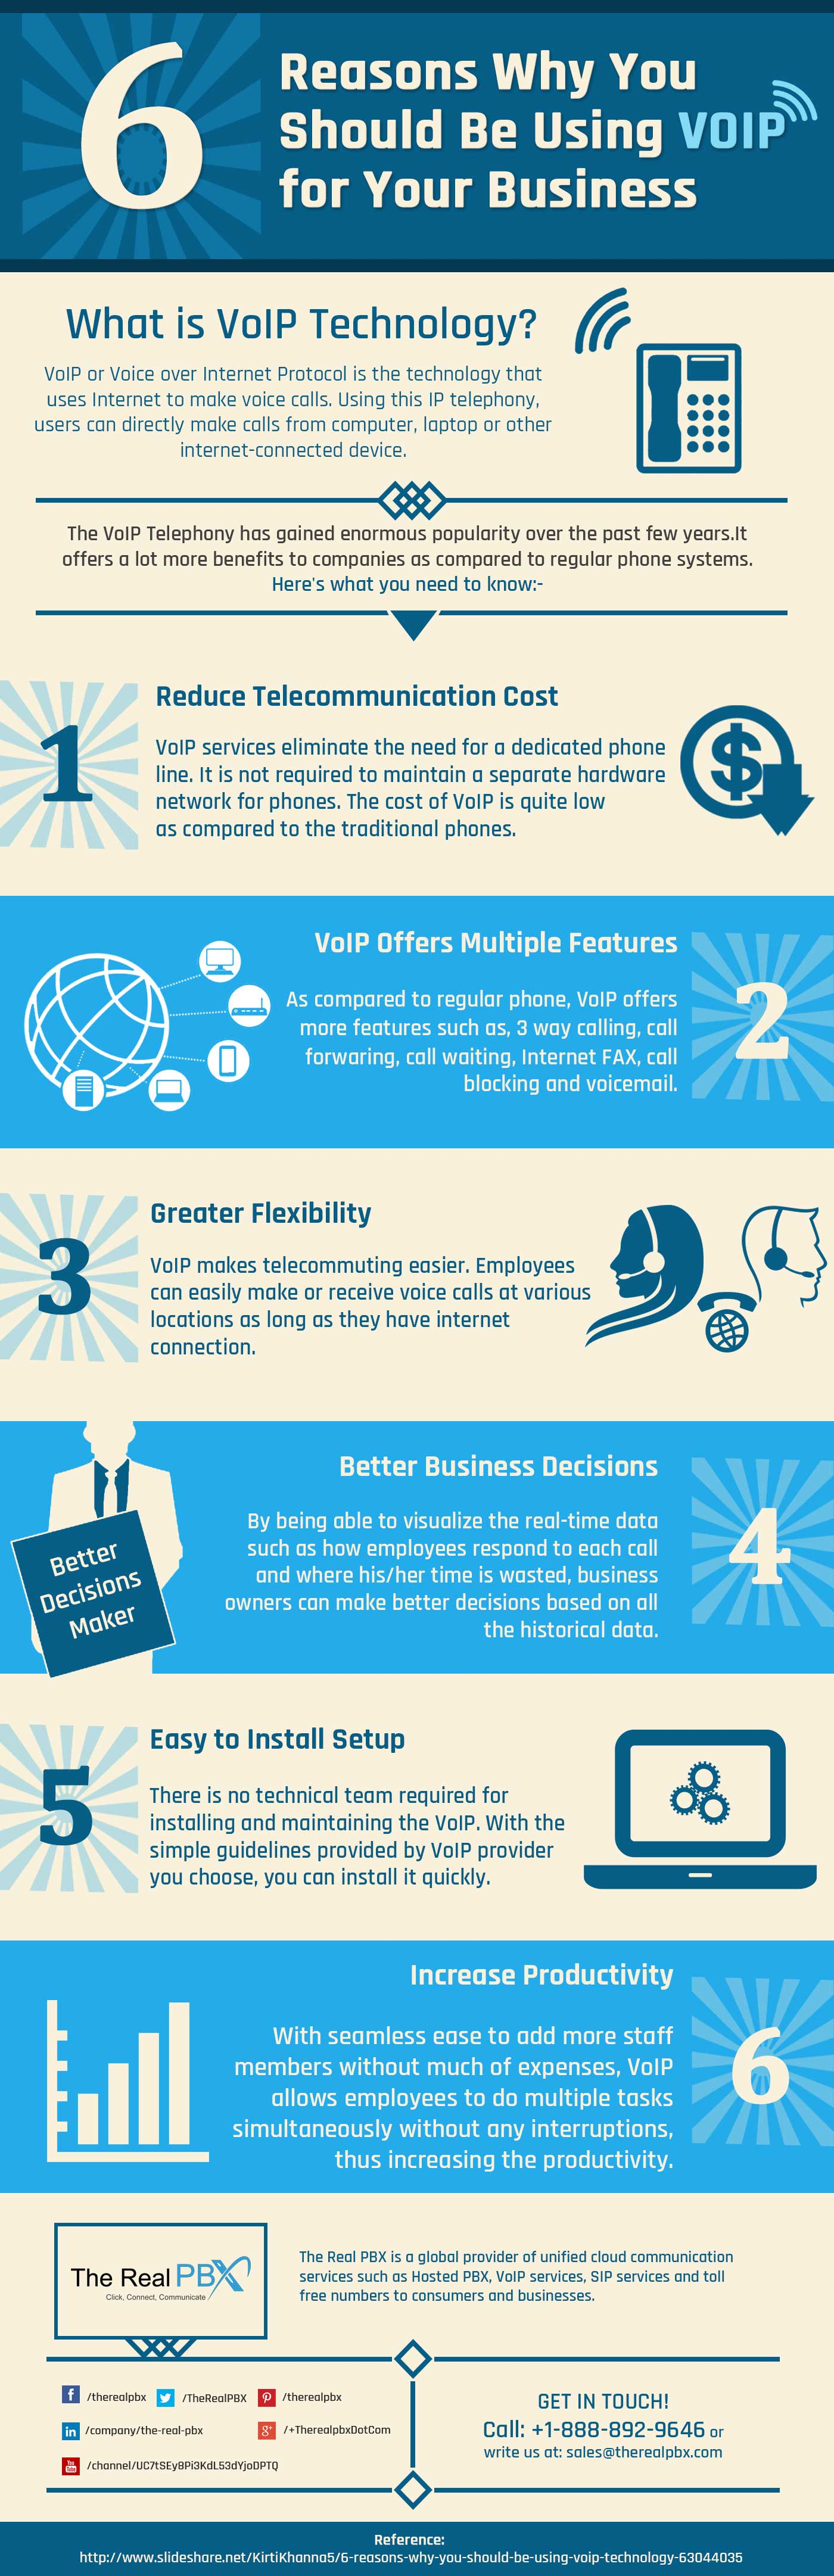 6-reasons-why-you-should-be-using-voip